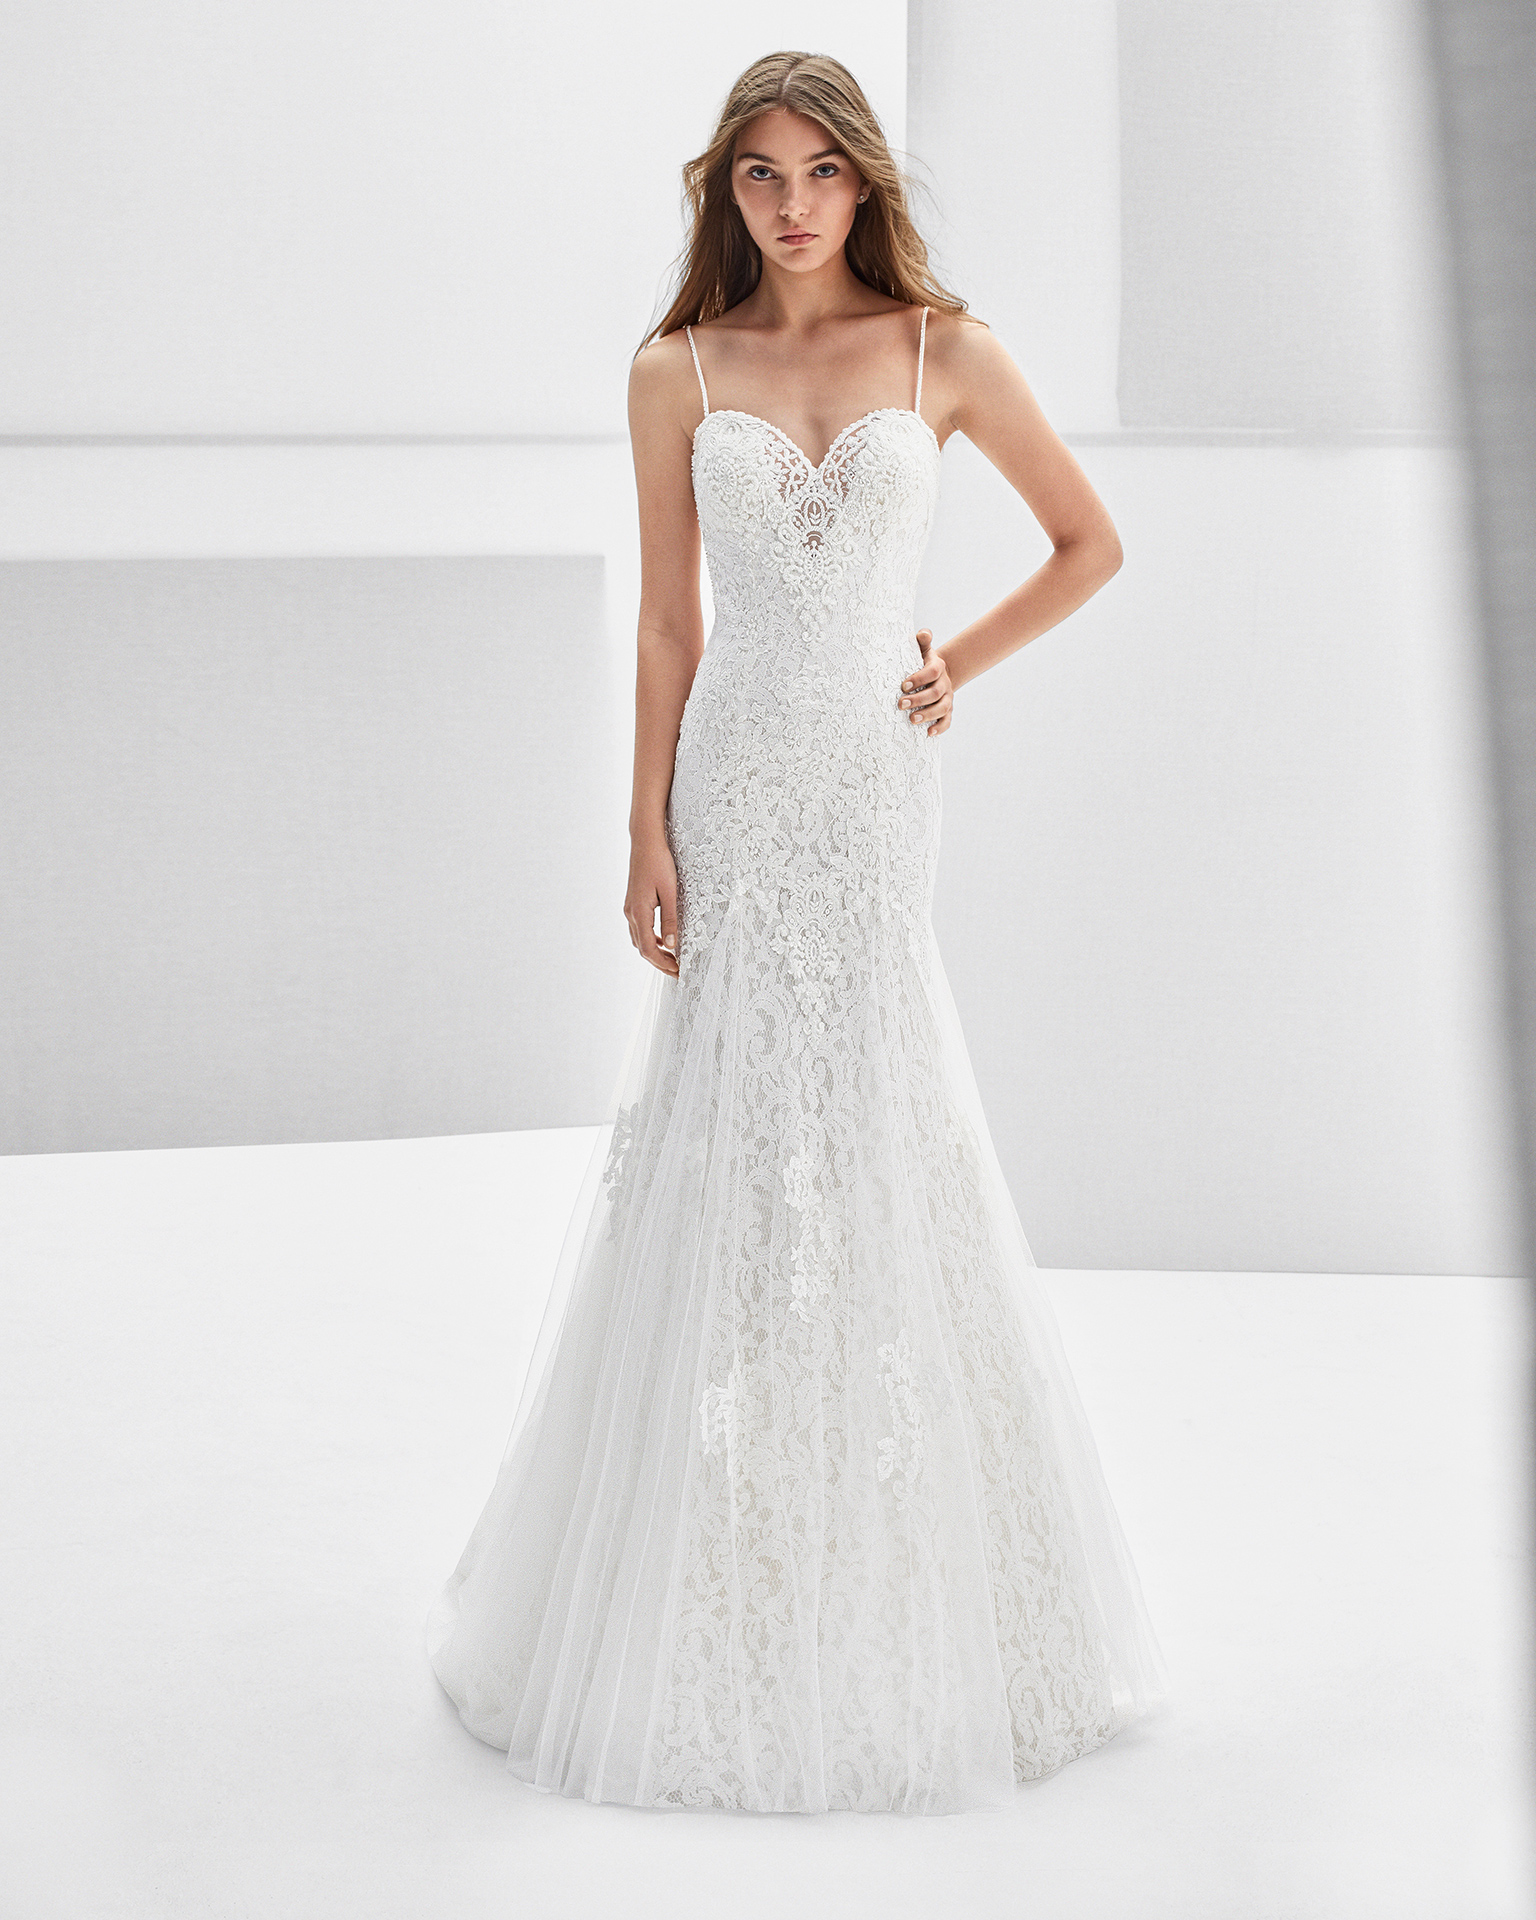 Mermaid-style beaded lace wedding dress with sweetheart neckline, low back and lace appliqués.